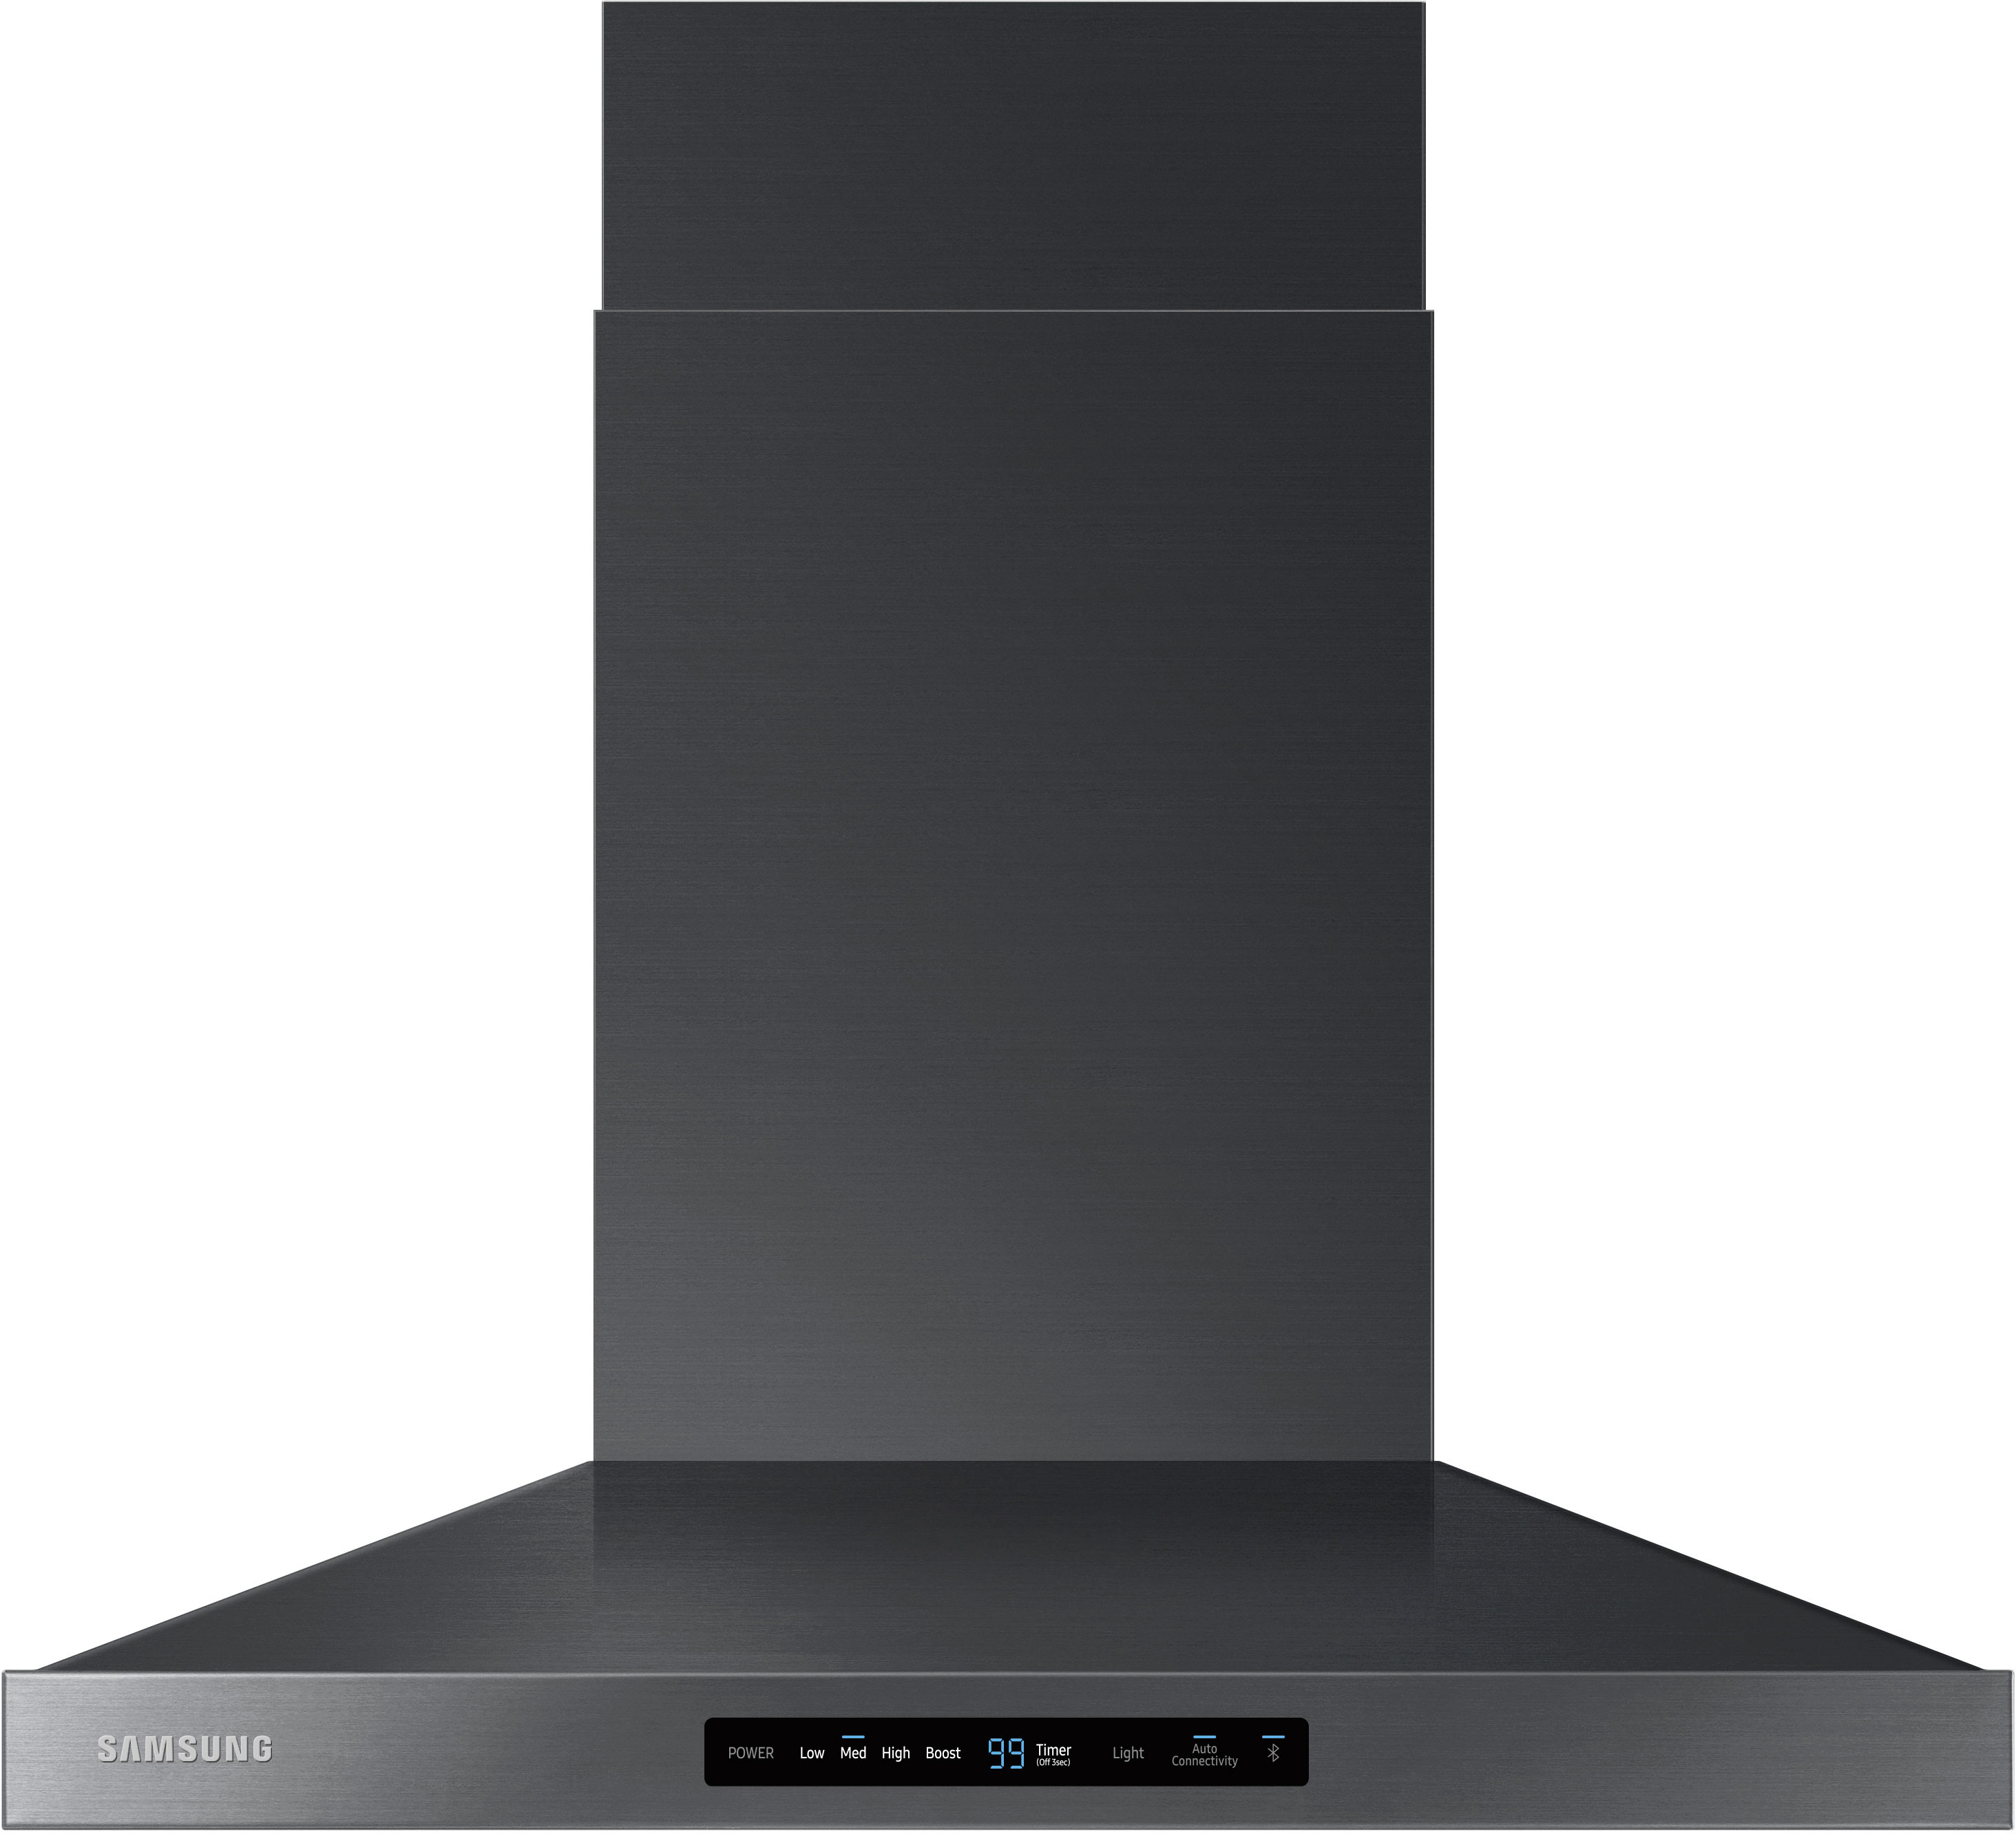 Samsung Nk30k7000wg 30 Inch Smart Wall Mount Chimney Range Hood With Wi Fi And Bluetooth Connectivity 600 Cfm 4 Speeds Booster Led Cooktop Lighting Digital Touch Controls Dishwasher Safe Metal Filters And Ada